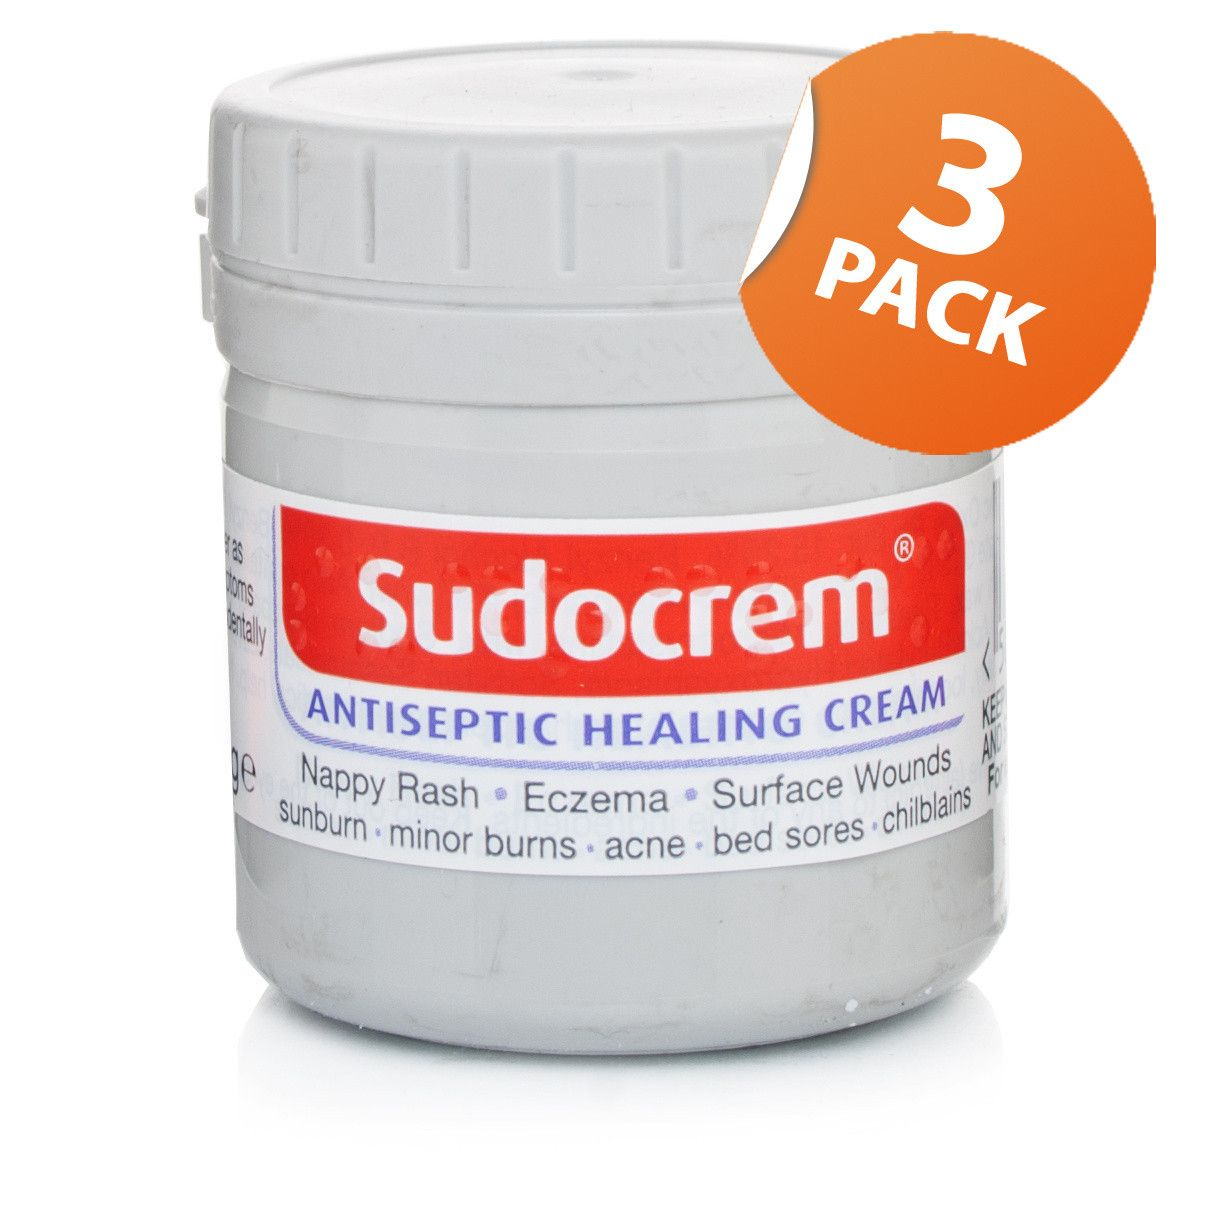 Sudocrem Antiseptic Healing Cream Triple Pack Skin care